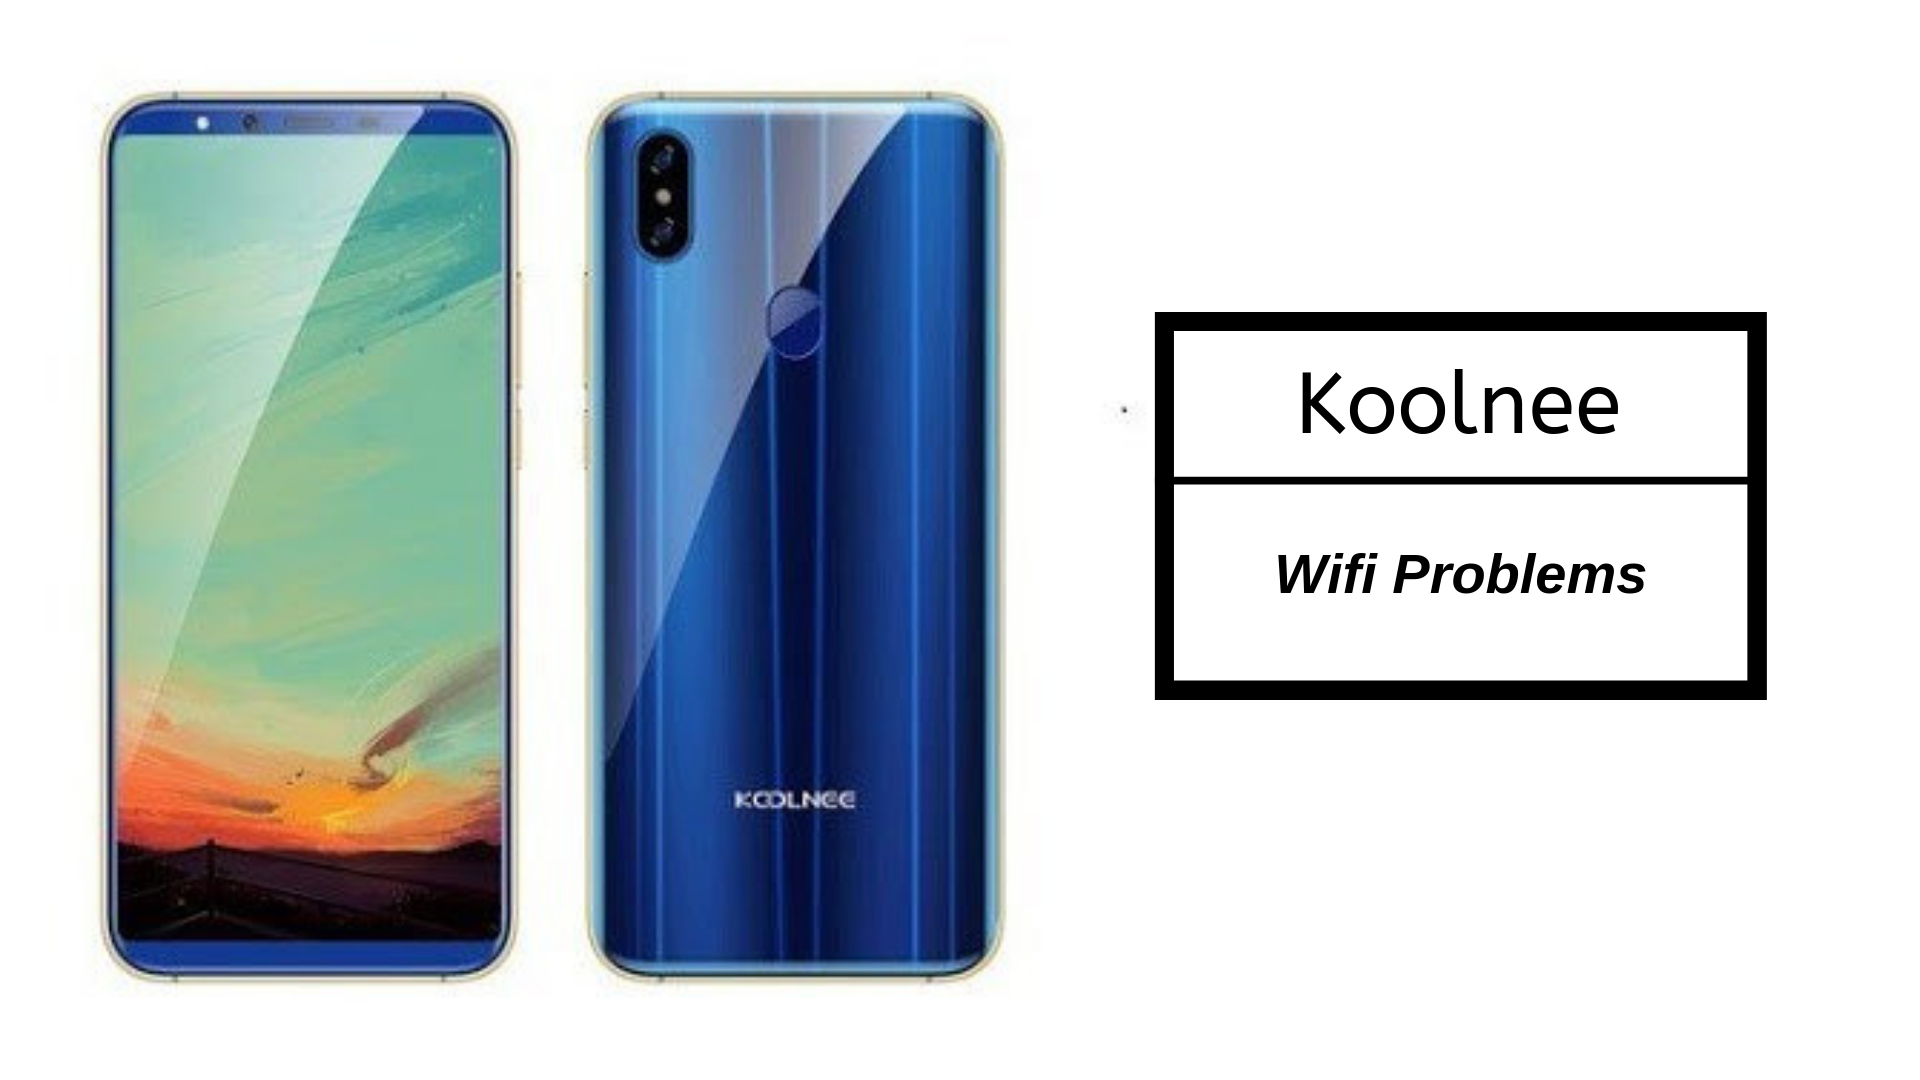 Quick Guide To Fix Koolnee Wifi Problems [Troubleshoot]